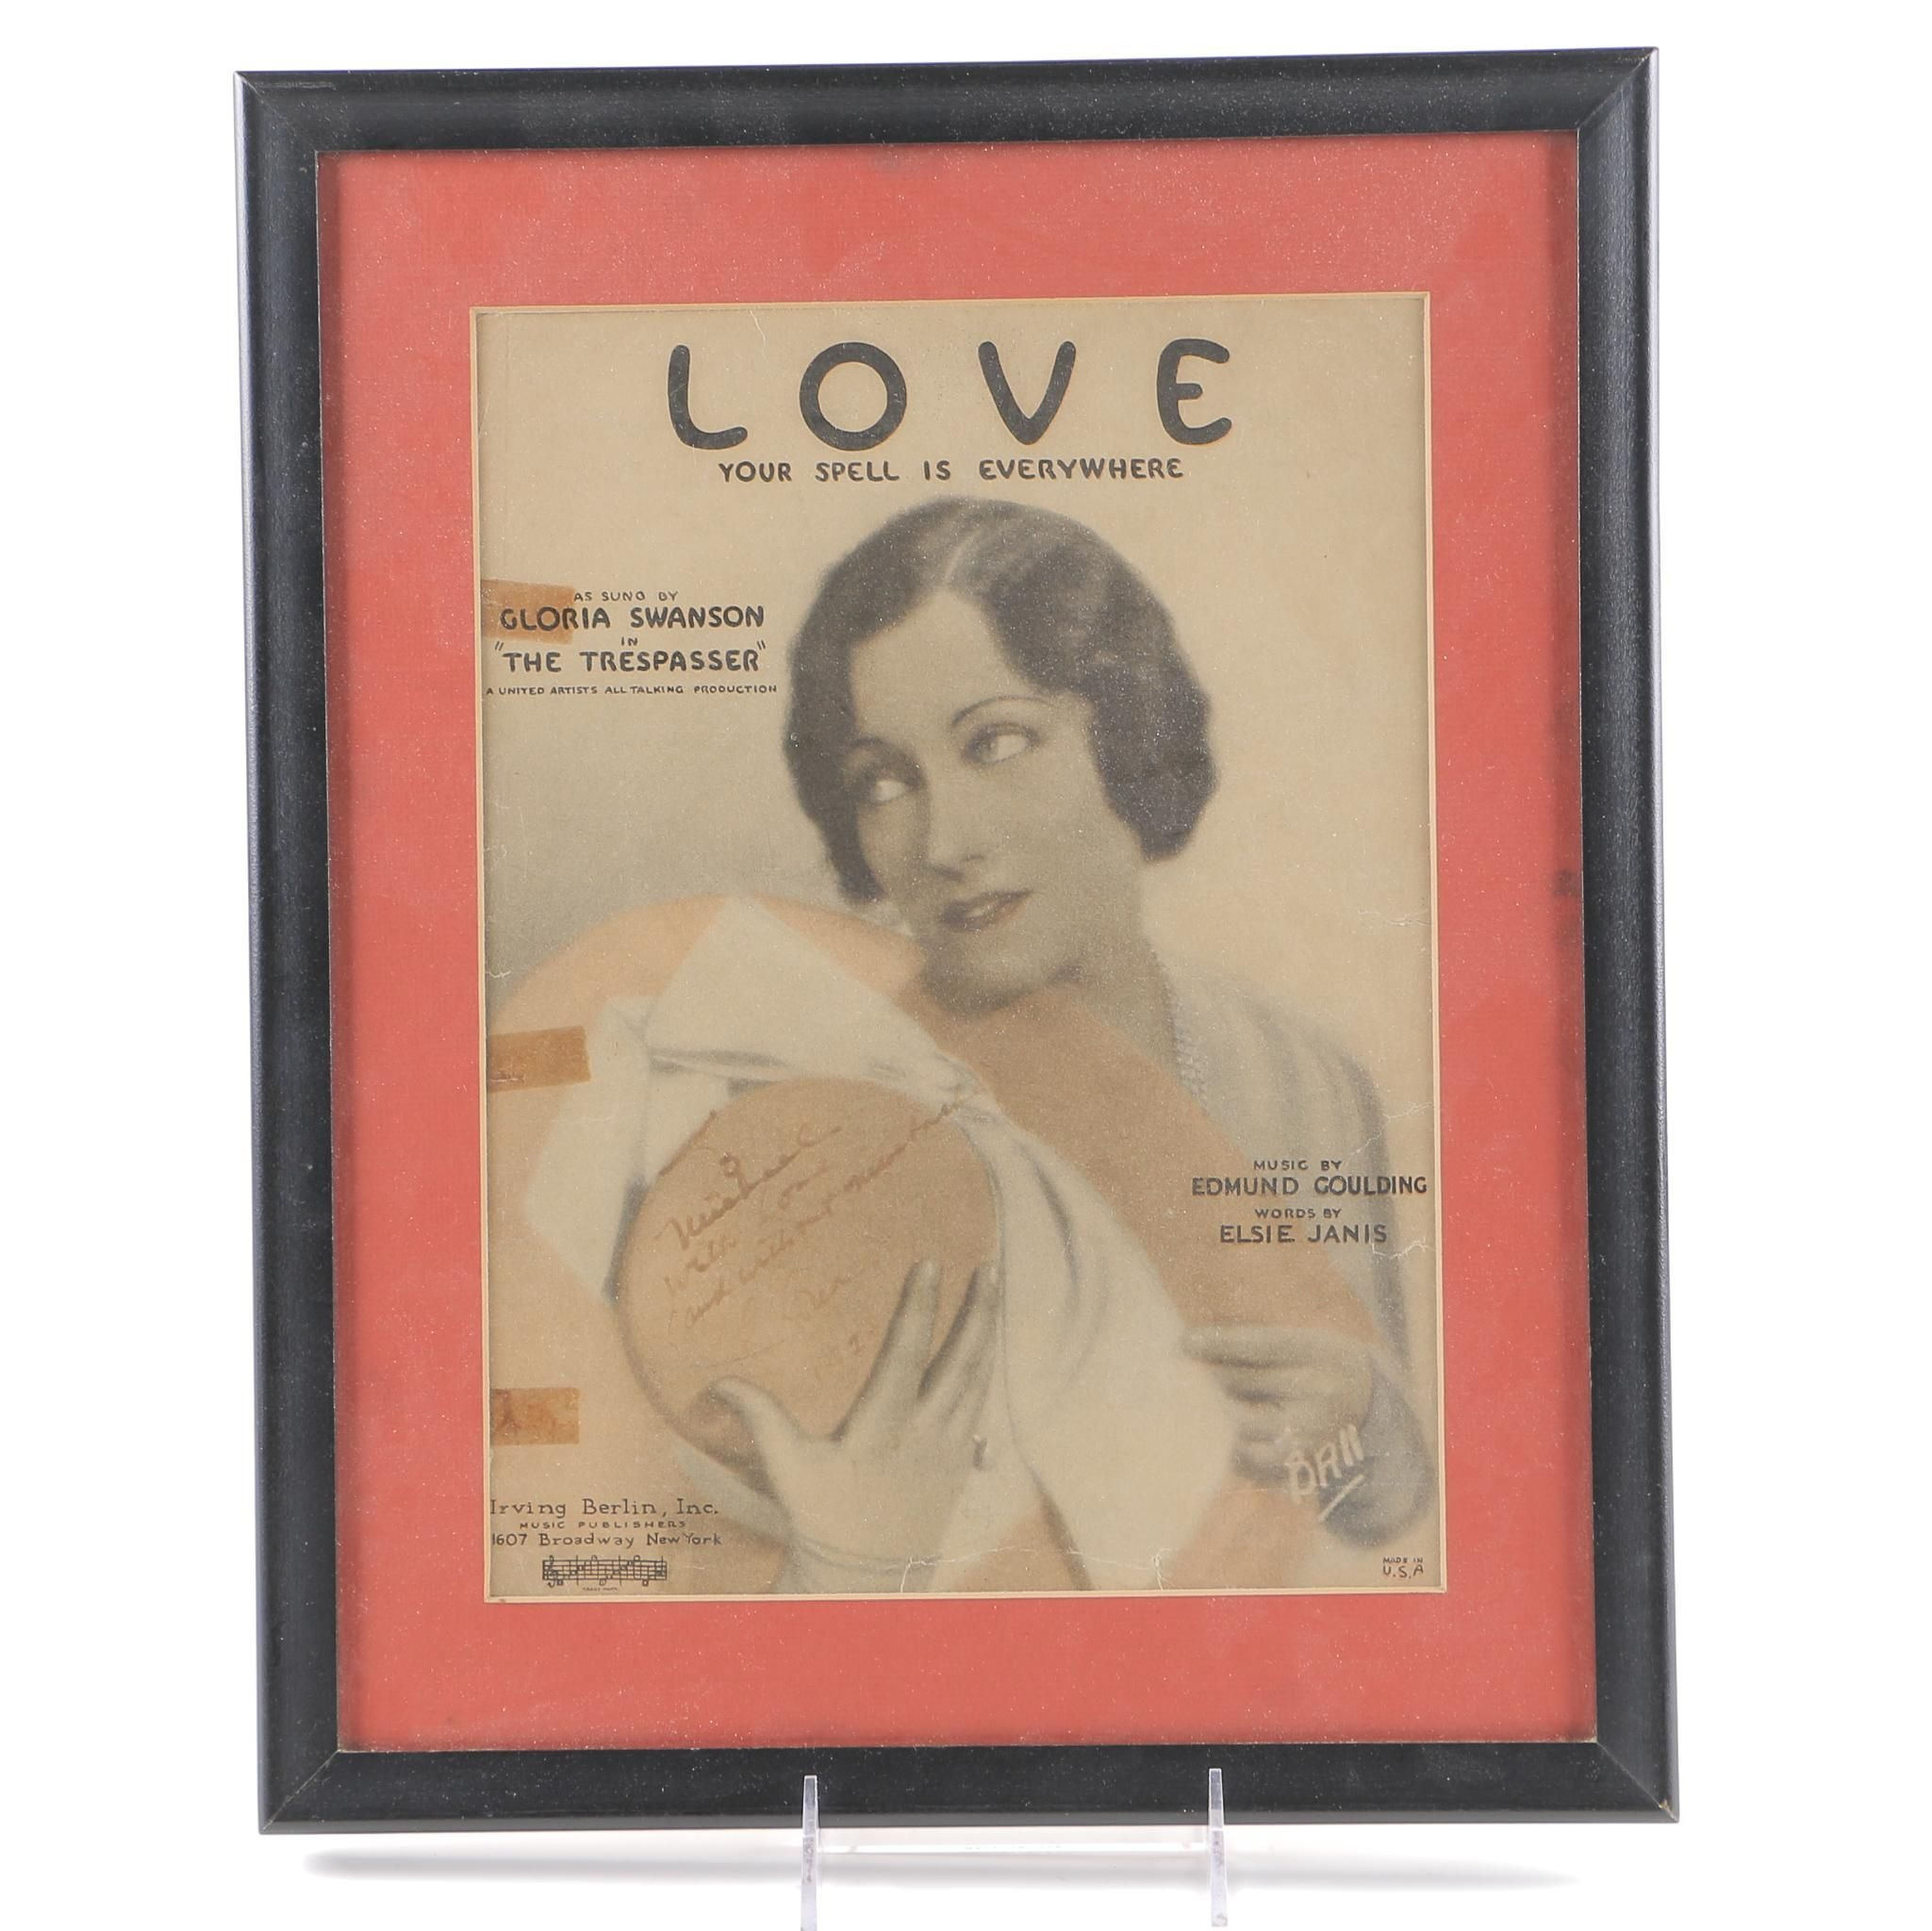 Gloria Swanson Signed Sheet Music Cover